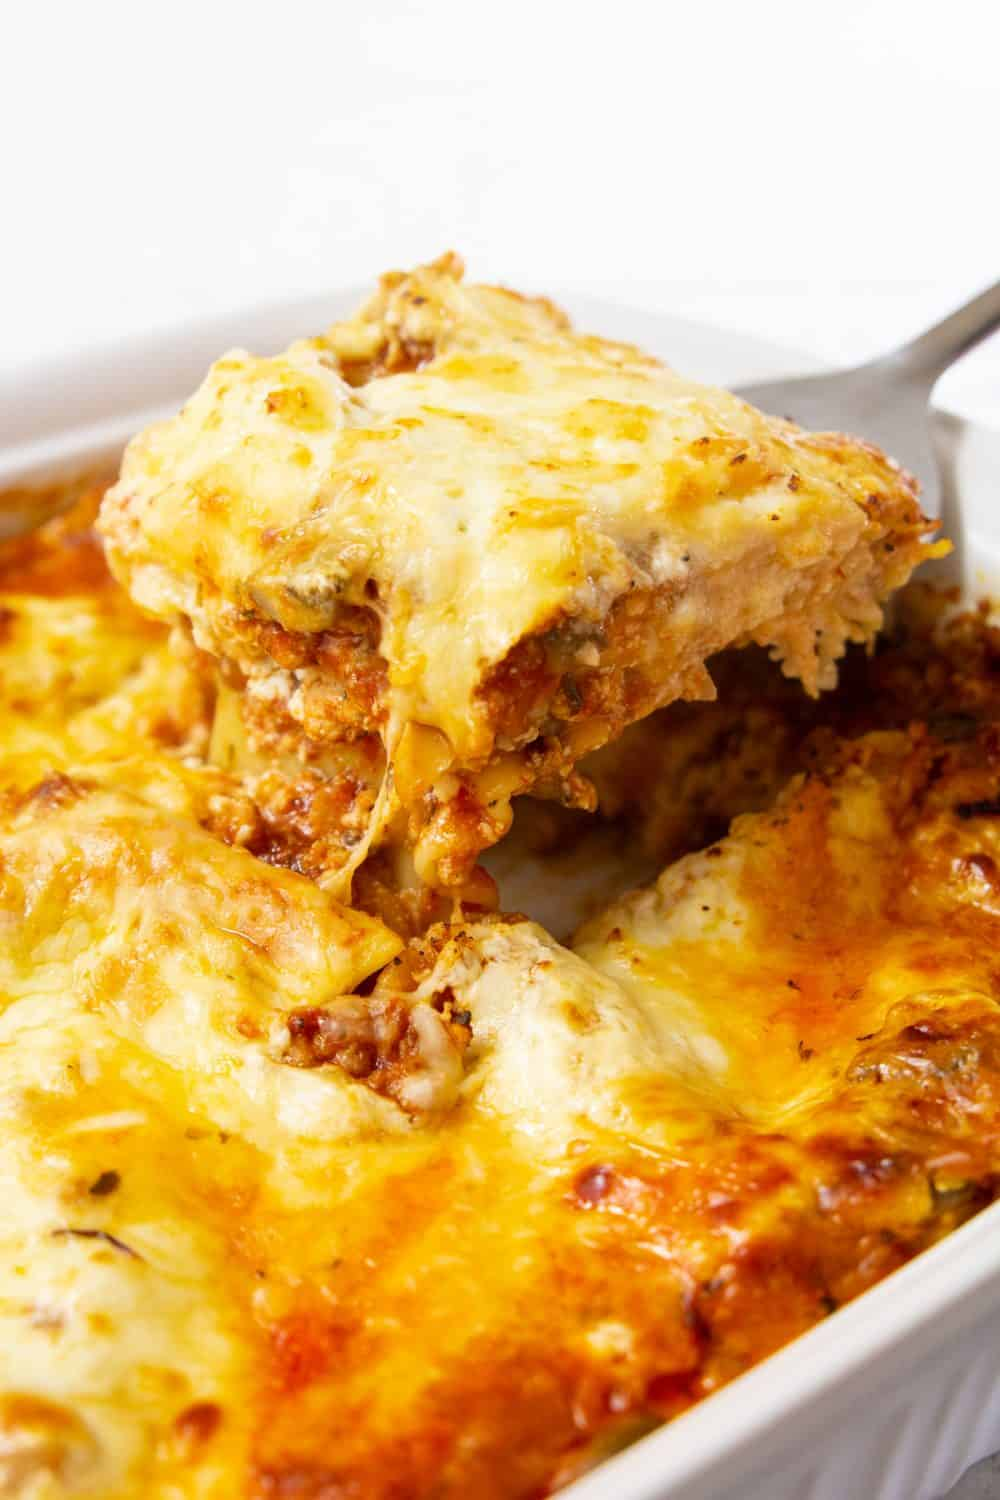 Close up image of cooked chicken lasagna recipe with one portion being scooped out with a spatula showing the melted cheese and layers of pasta and meat sauce